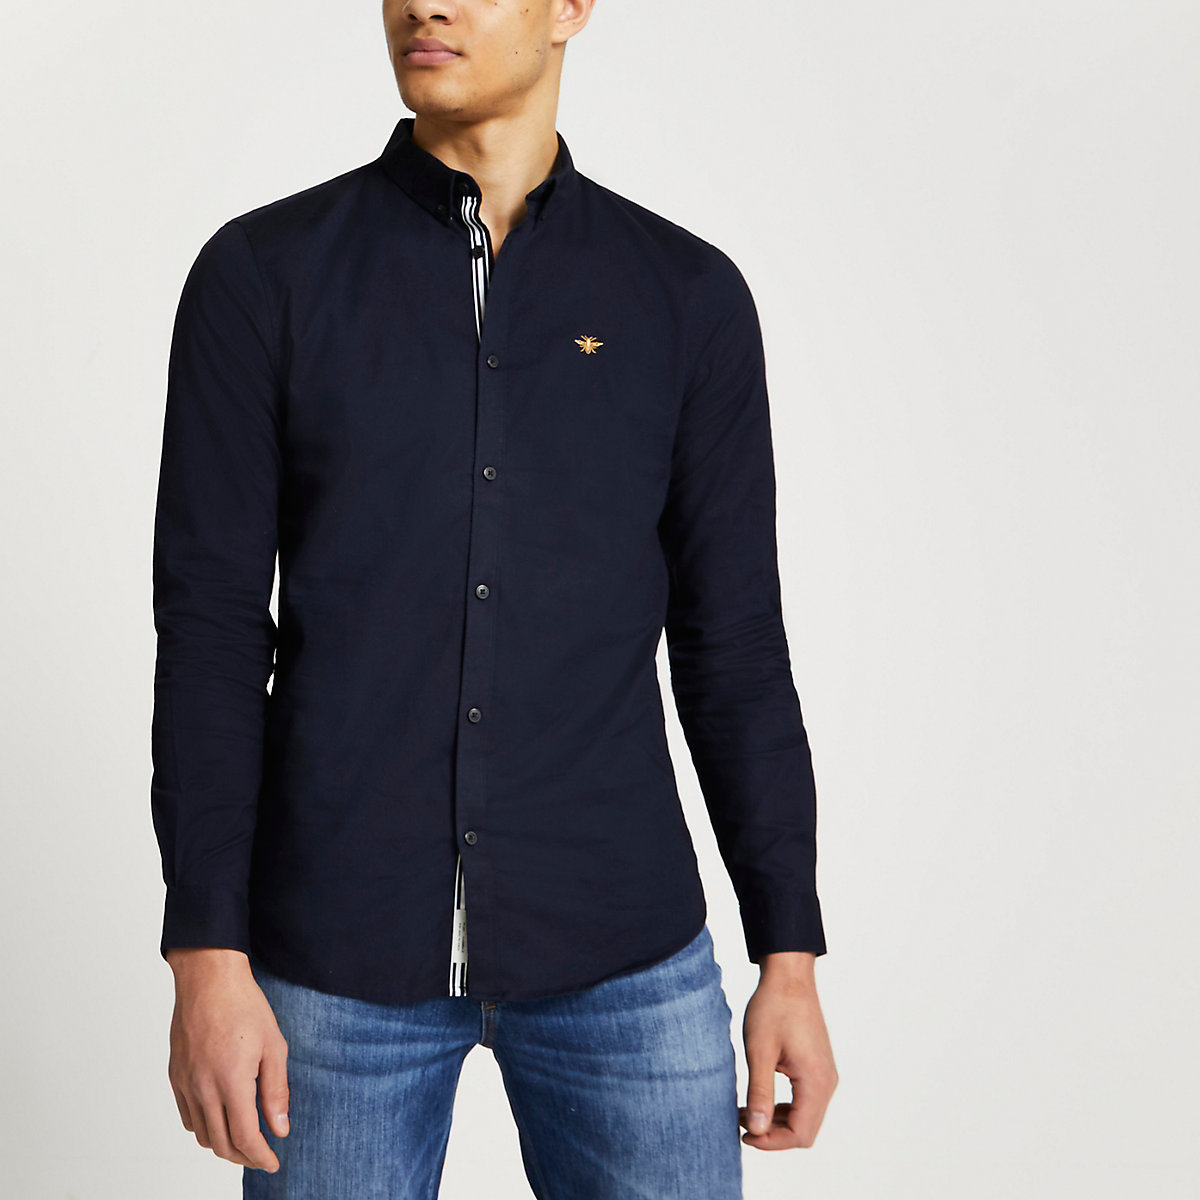 Navy muscle fit embroidered Oxford shirt